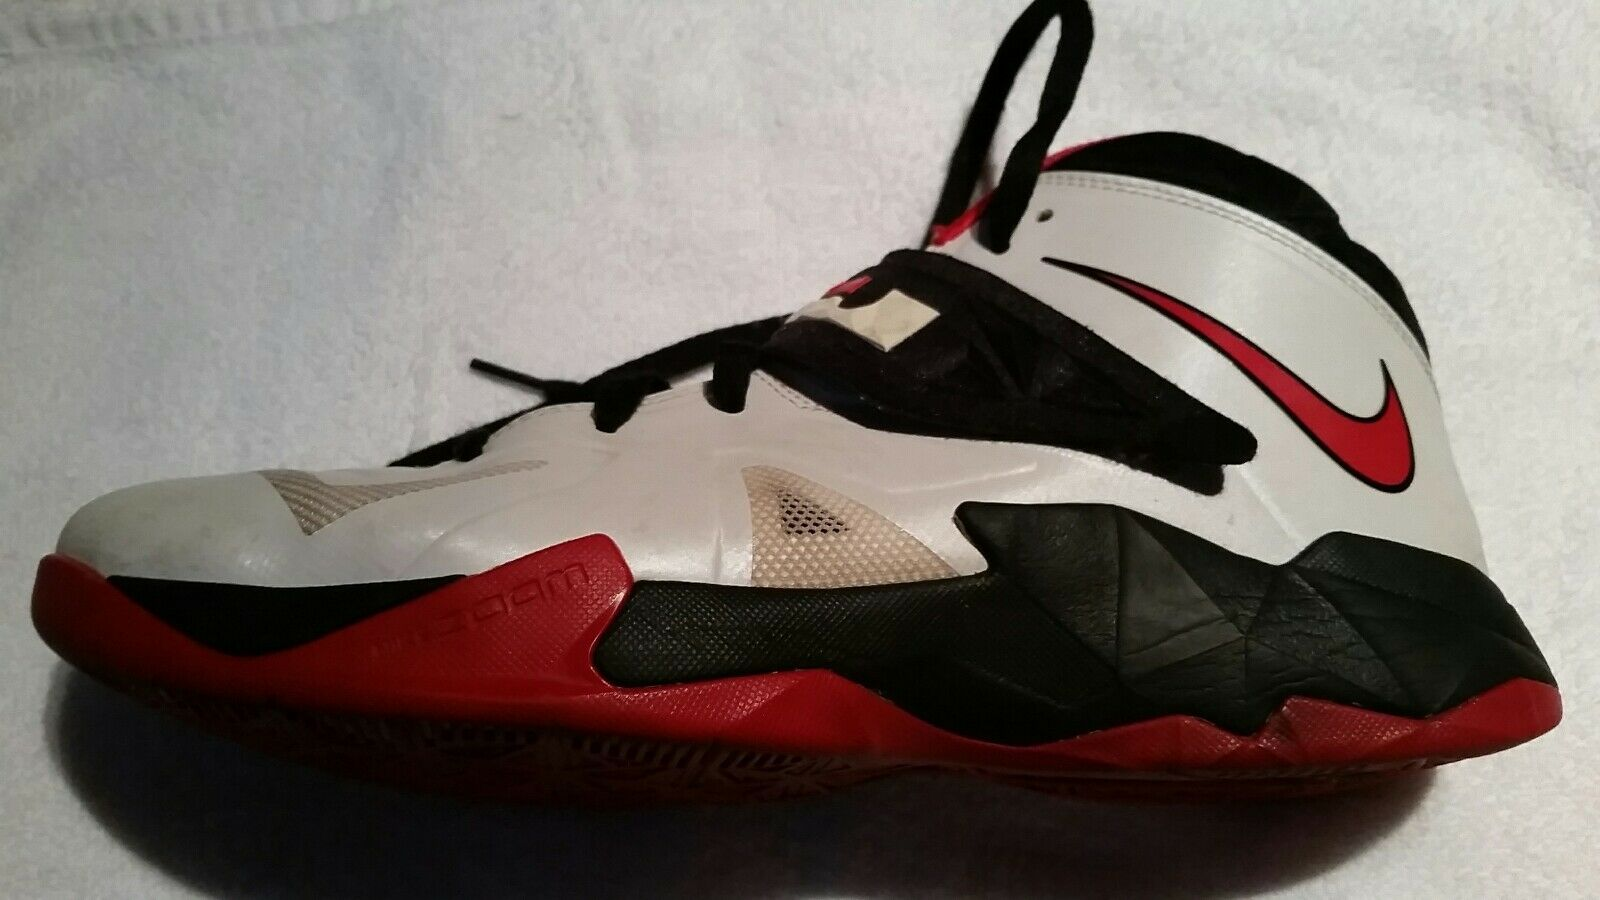 Nike Zoom Lebron Soldier VII 7 599264-100 Red White Black Basketball Shoes 12 Great discount